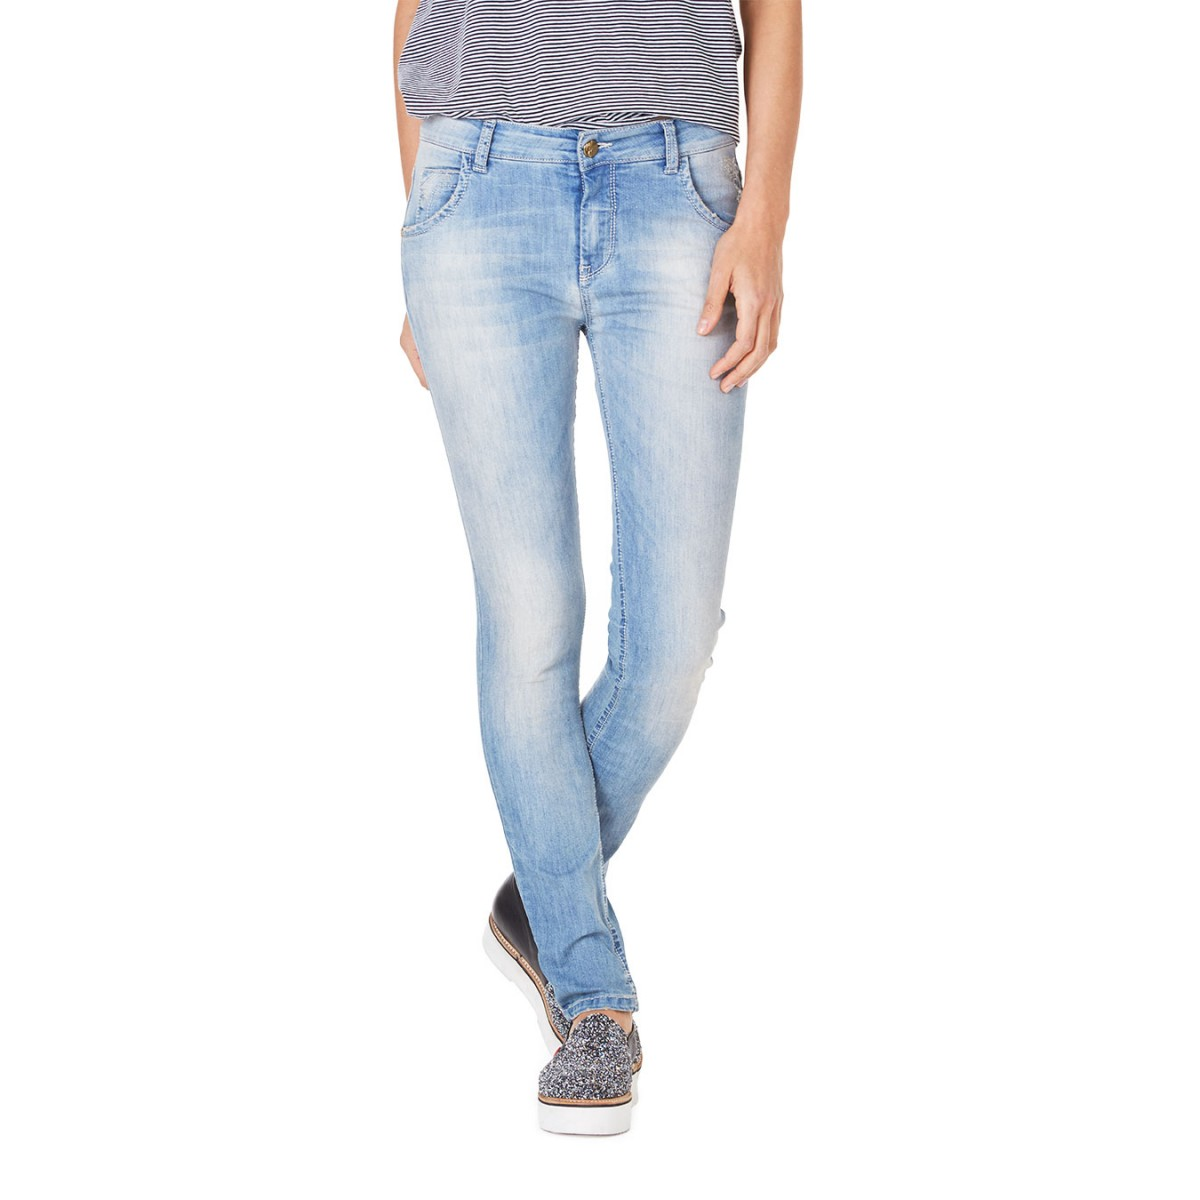 pantalone-denim-dritto